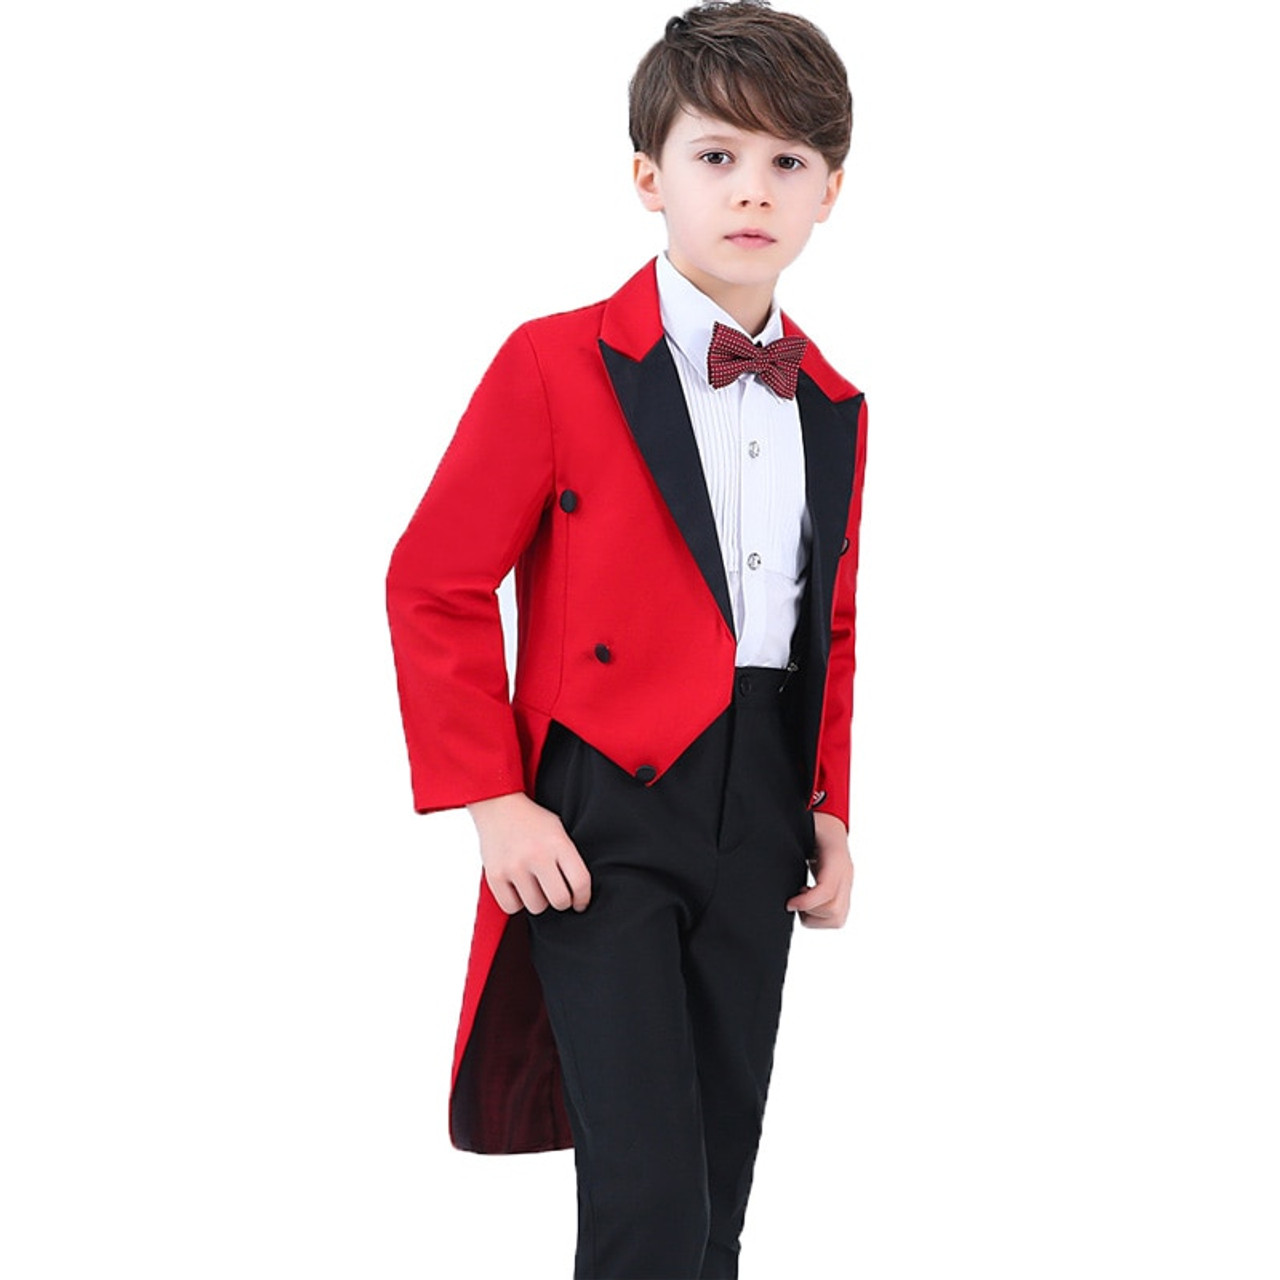 fee23439ac83e ... Boys Formal Dress Tuxedo Piano Performance Costume Flower Boys Birthday Wedding  Suits 5pcs Jacket + Shirt ...